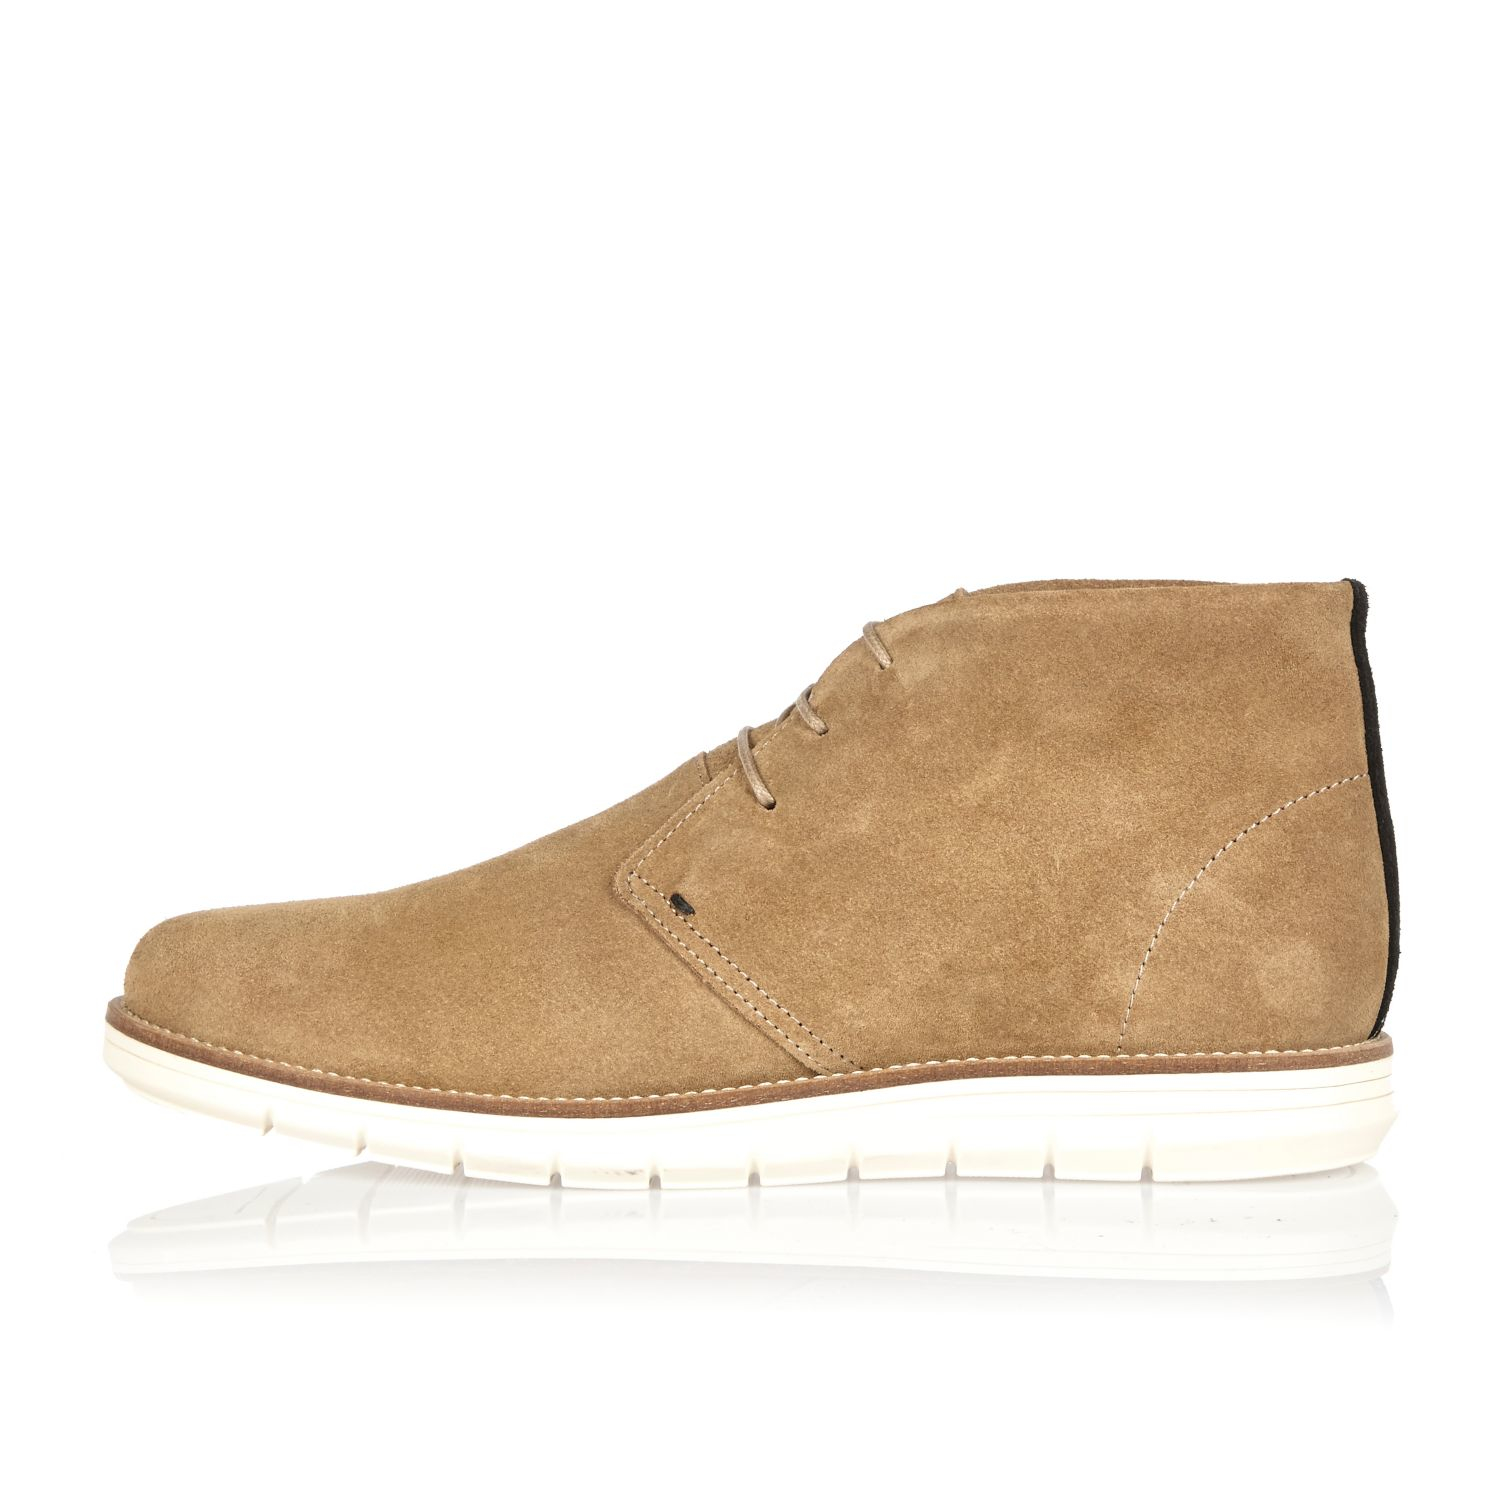 river island camel suede wedge chukka boots in brown for